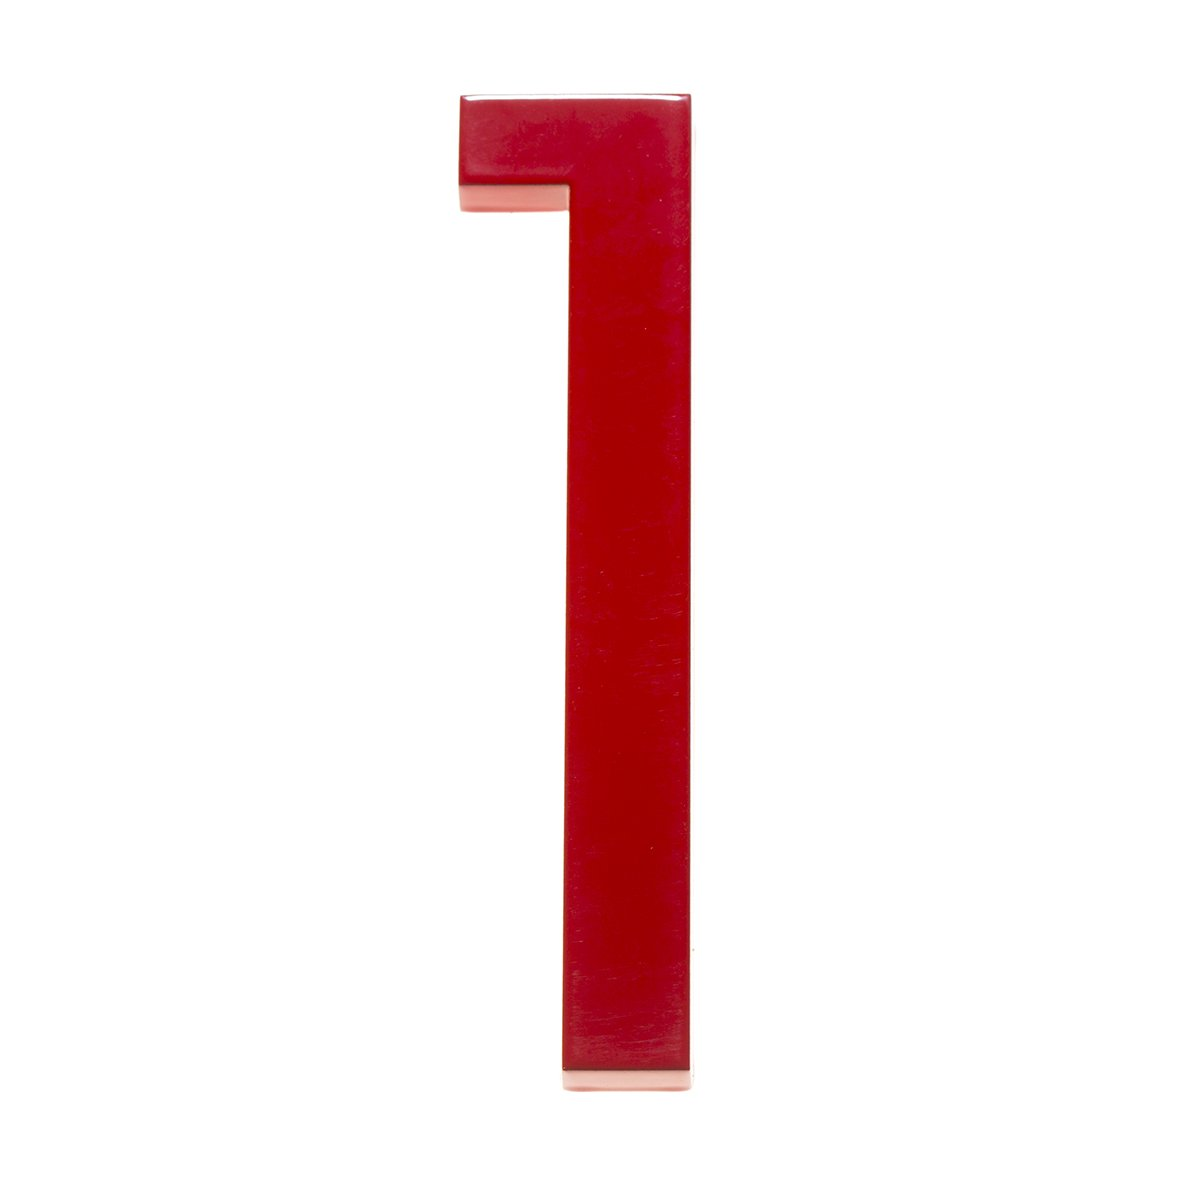 Modern House Number Red Color Aluminum Modern Font (Number 1) by Moderndwellnumbers.com (Image #1)